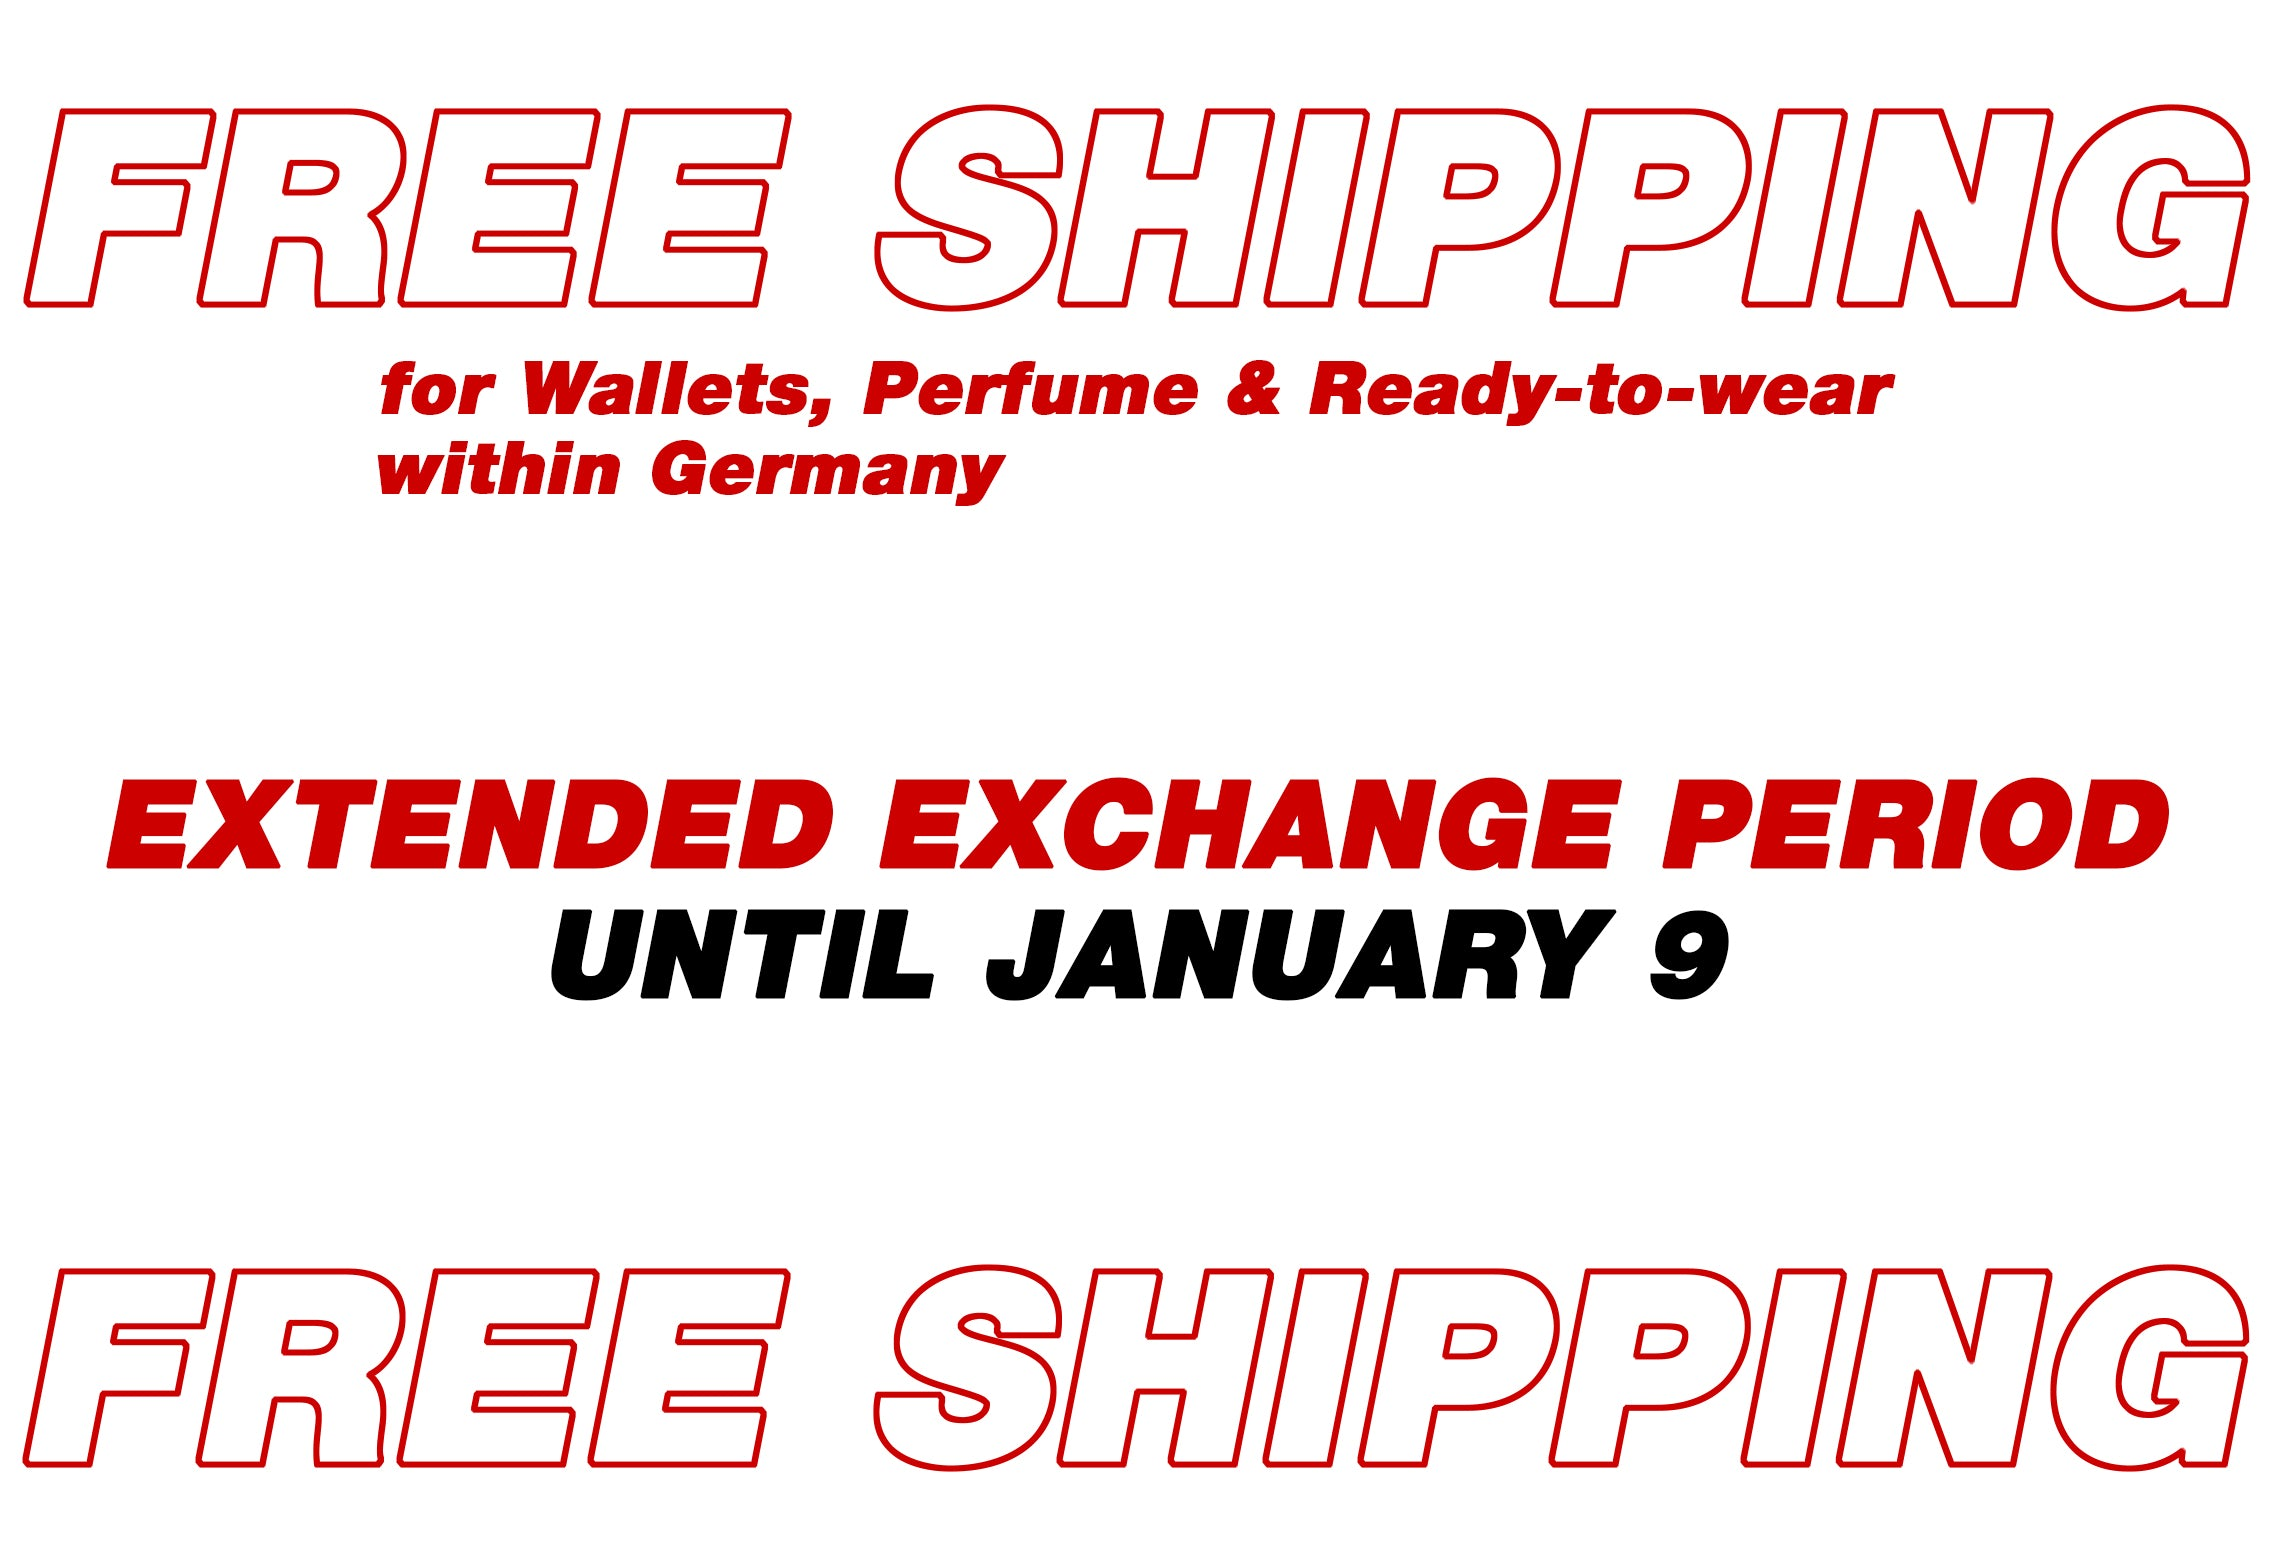 FREE SHIPPING for Wallets, Perfume & Ready-to-Wear